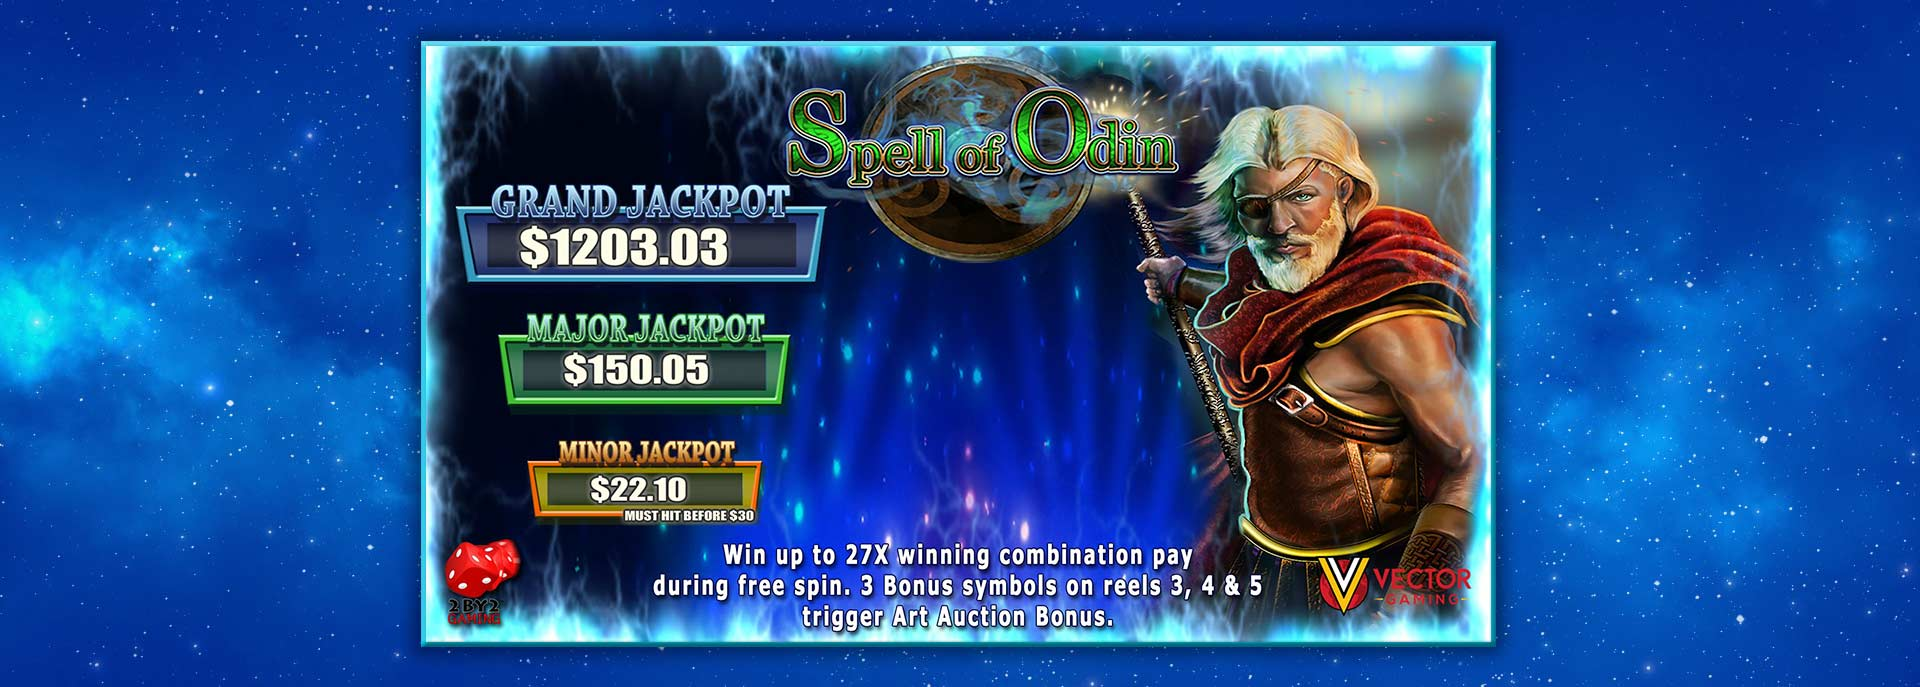 Spell of Odin game